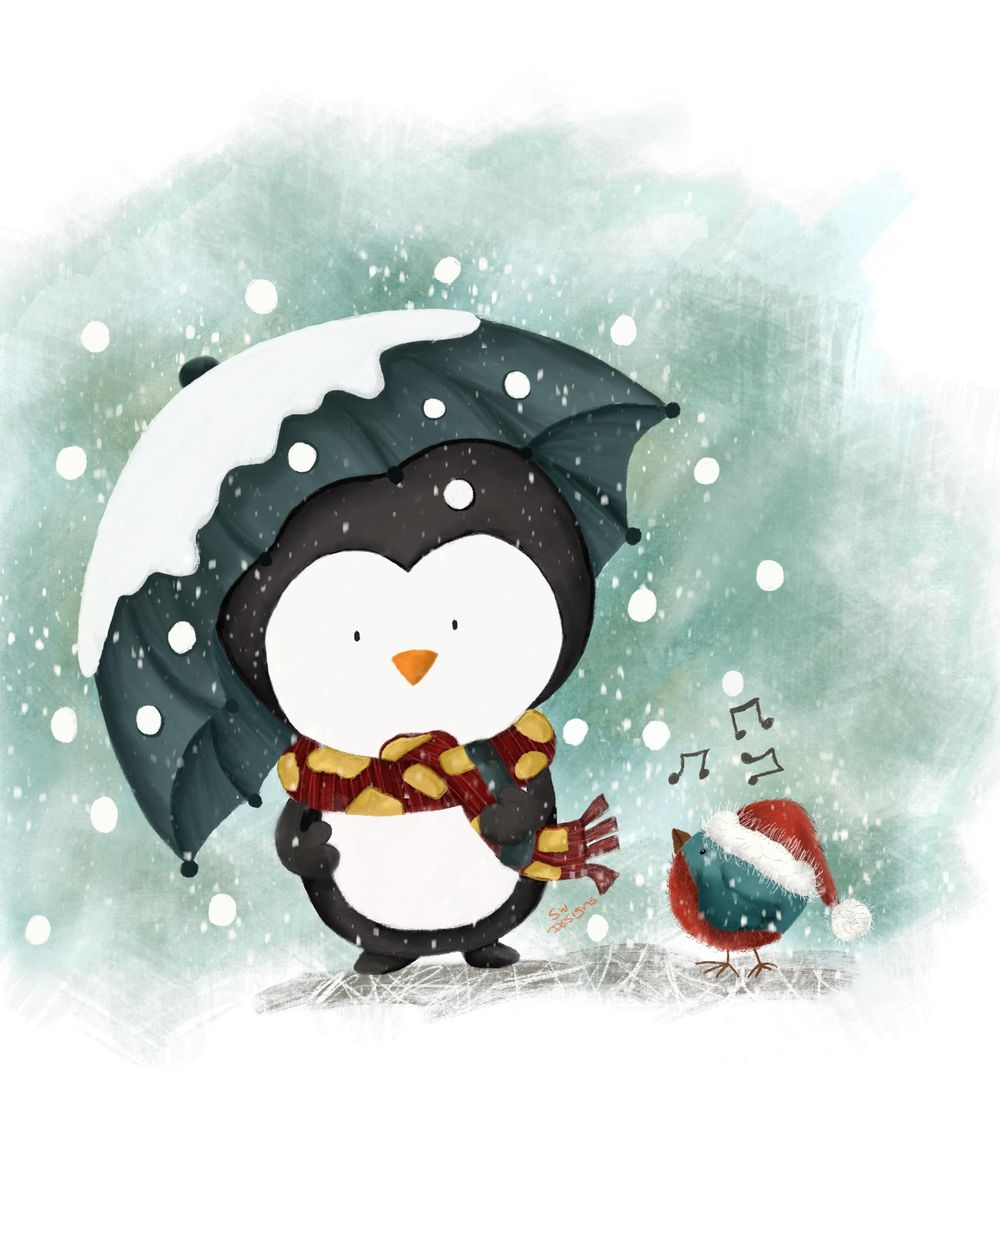 My Christmas Penguin - image 1 - student project